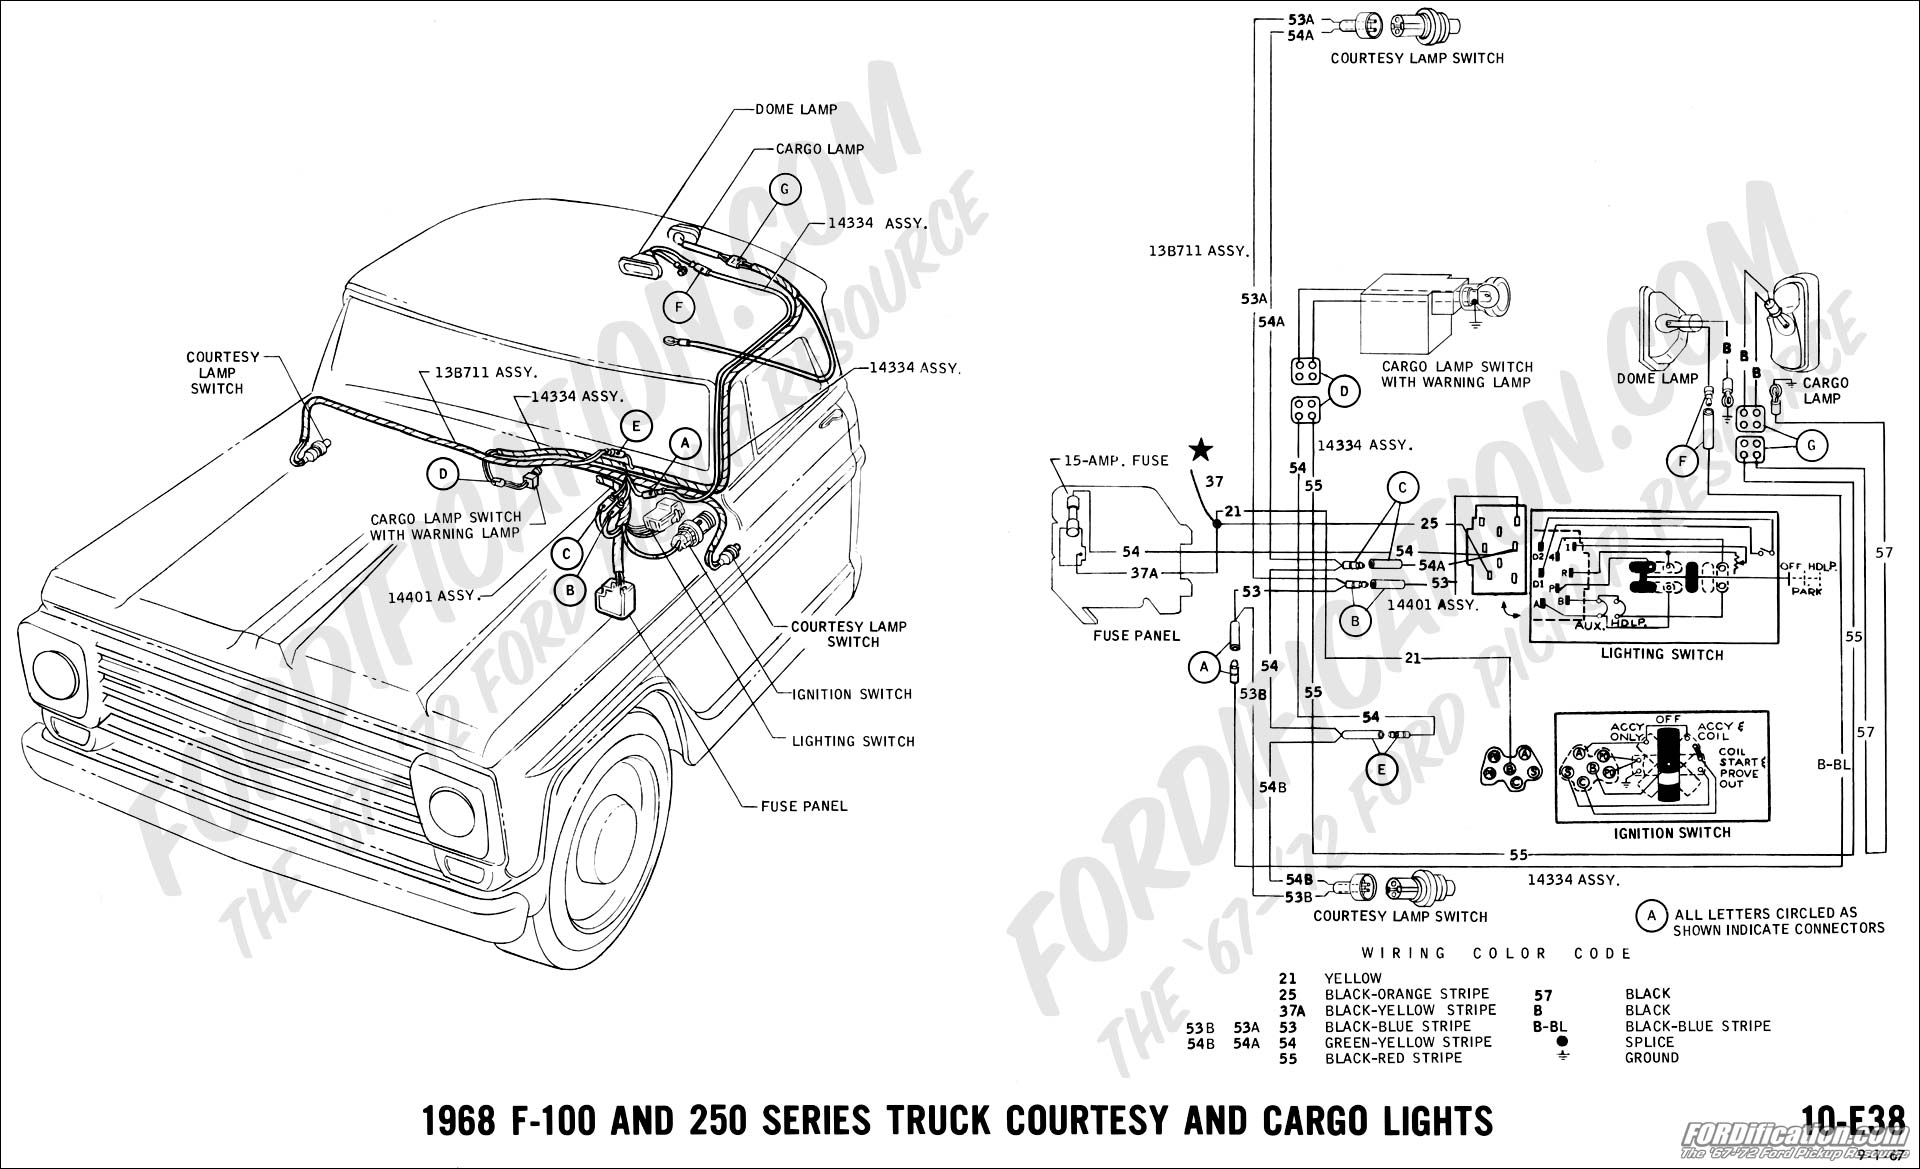 1969 Ford Ignition Switch Wiring Diagram Library Aftermarket Truck Technical Drawings And Schematics Section H Custom Campers 1968 F 100